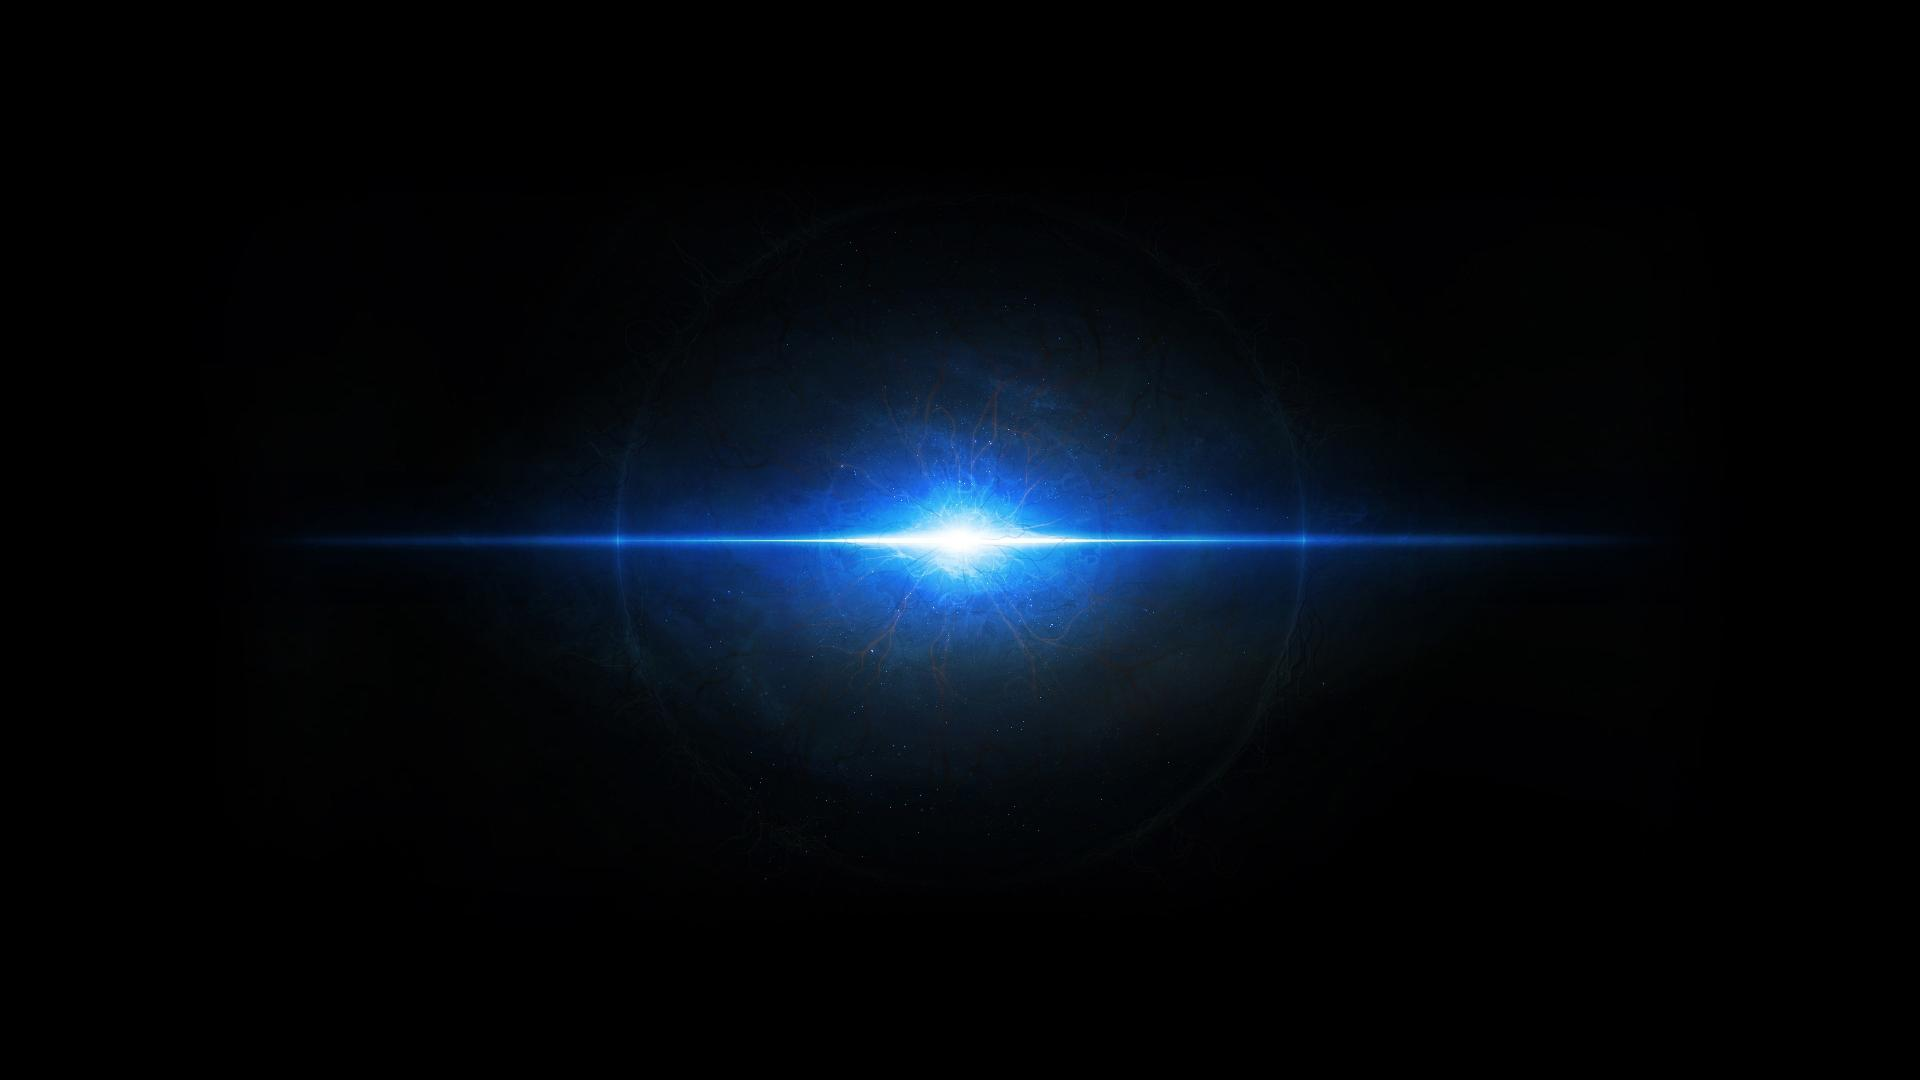 Blue space light in dark universe   Space Wallpapers   Hi Wallpapers 1920x1080